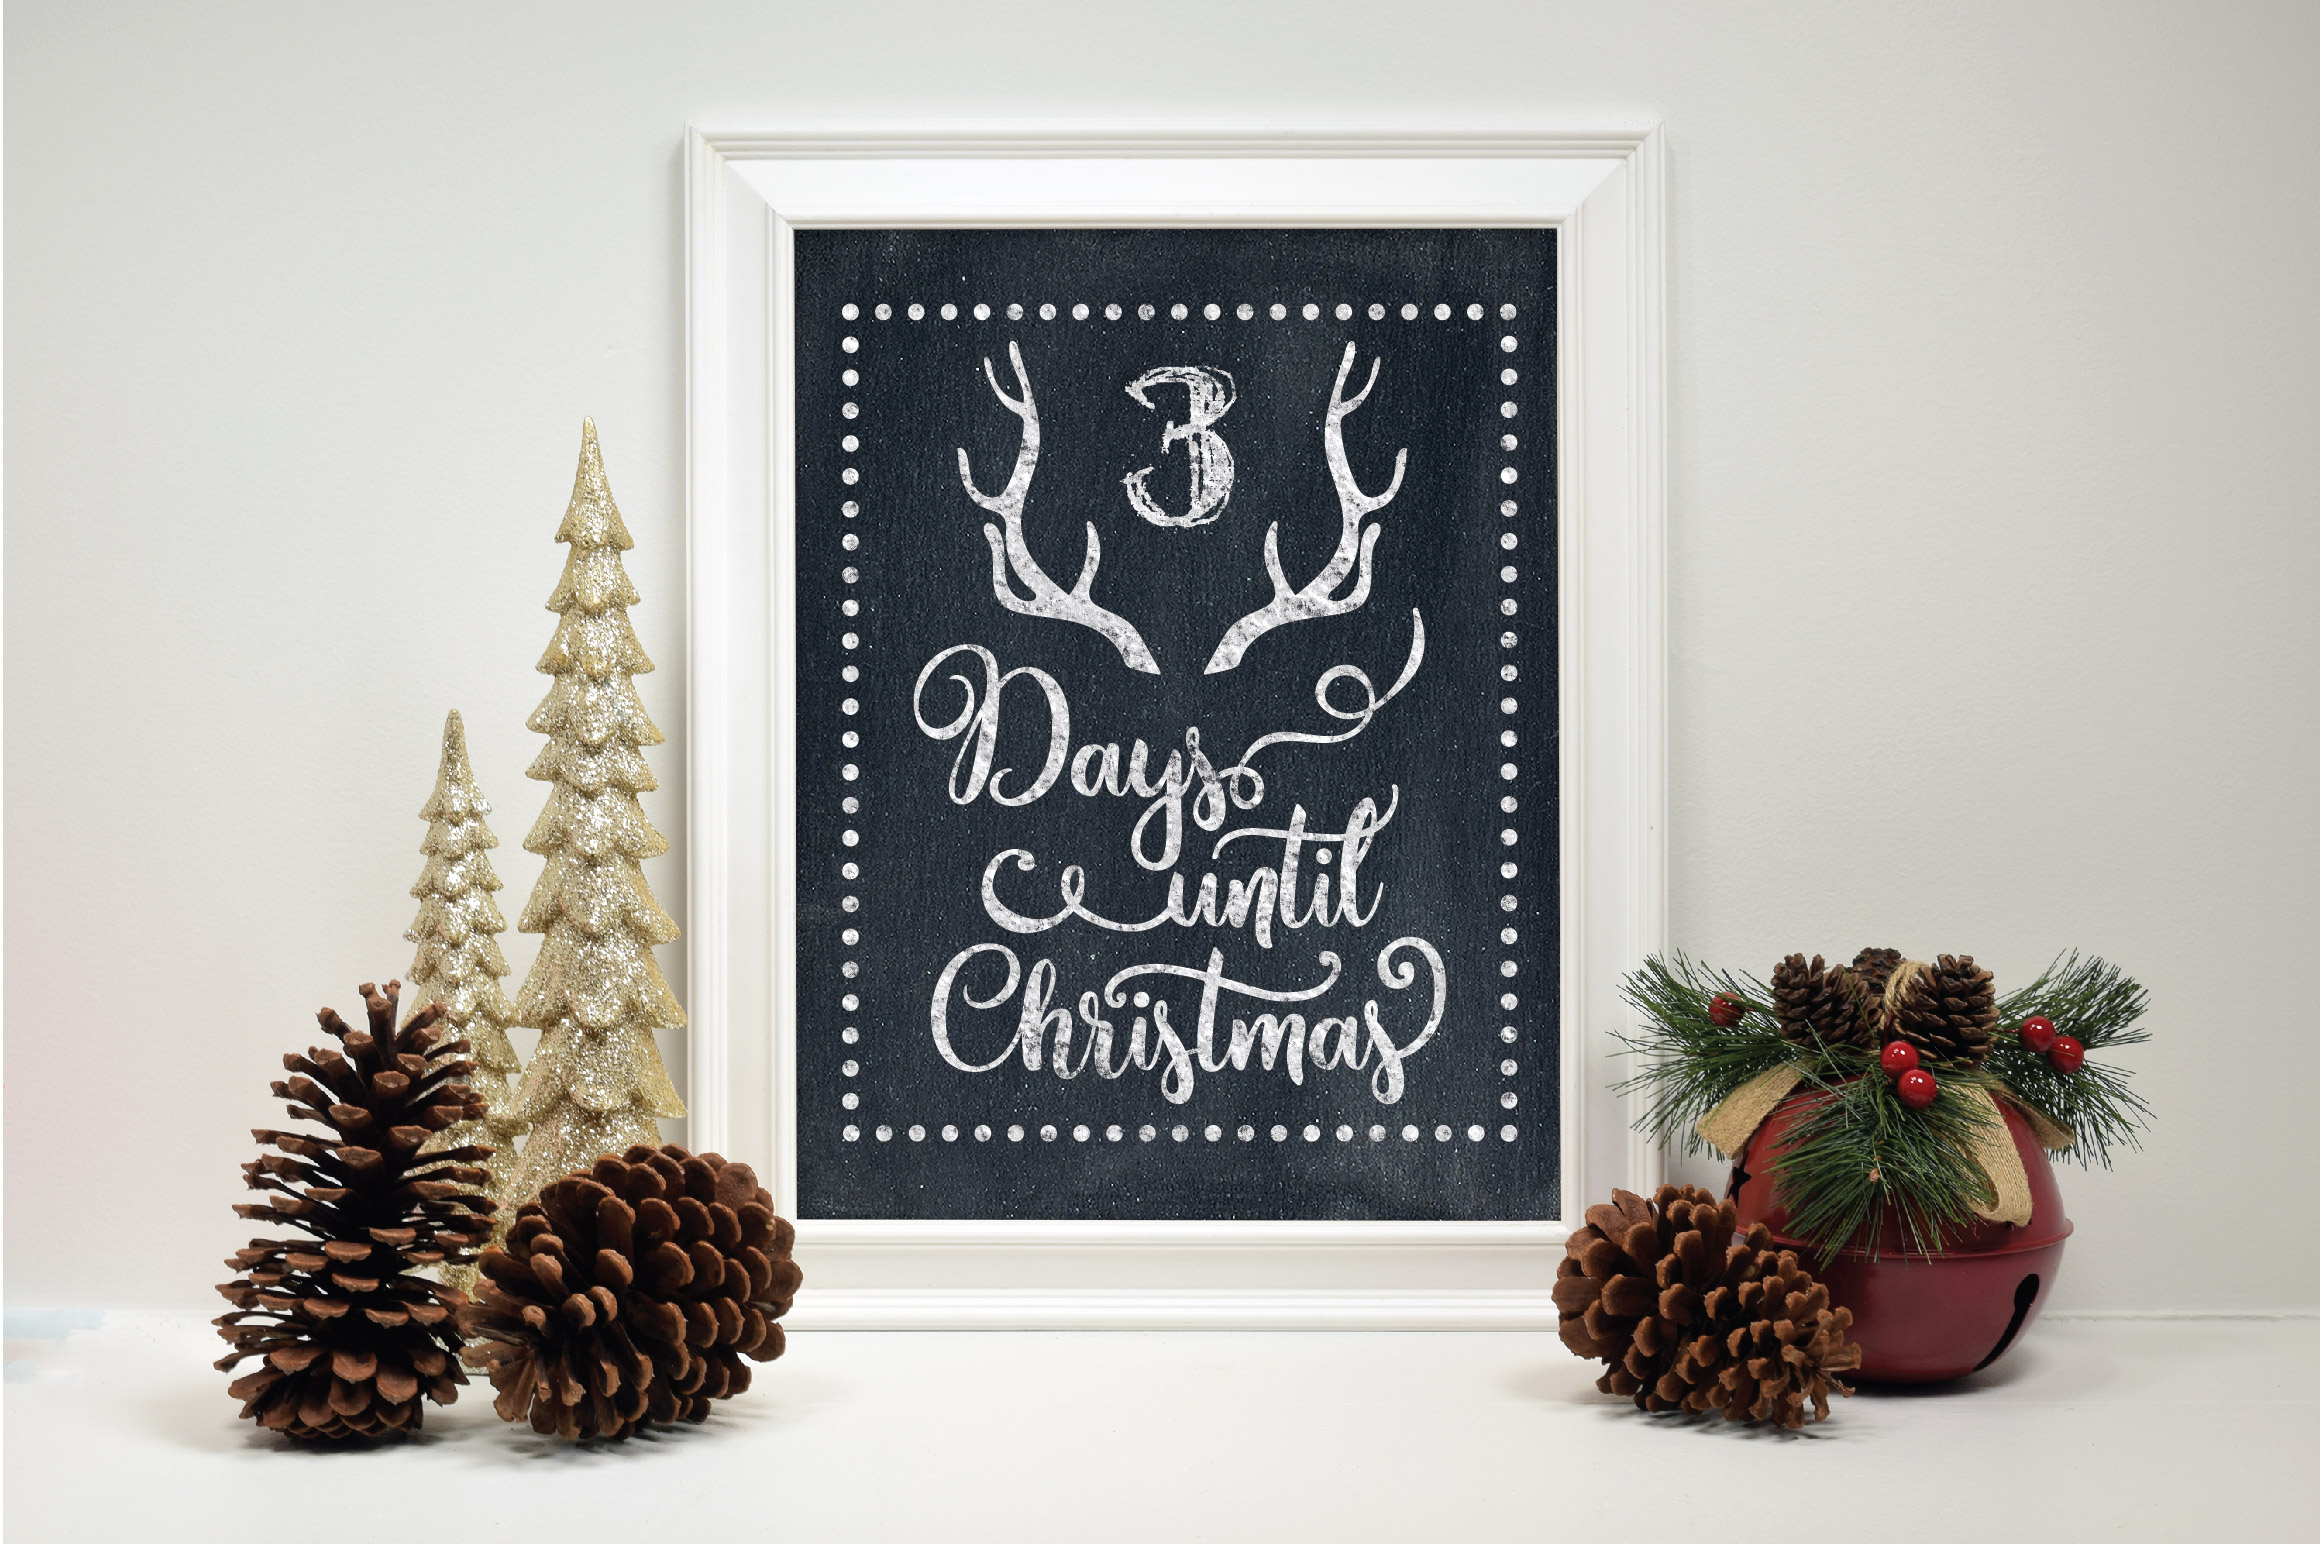 Christmas SVG Bundle with 10 Christmas Countdown Cut Files example image 4